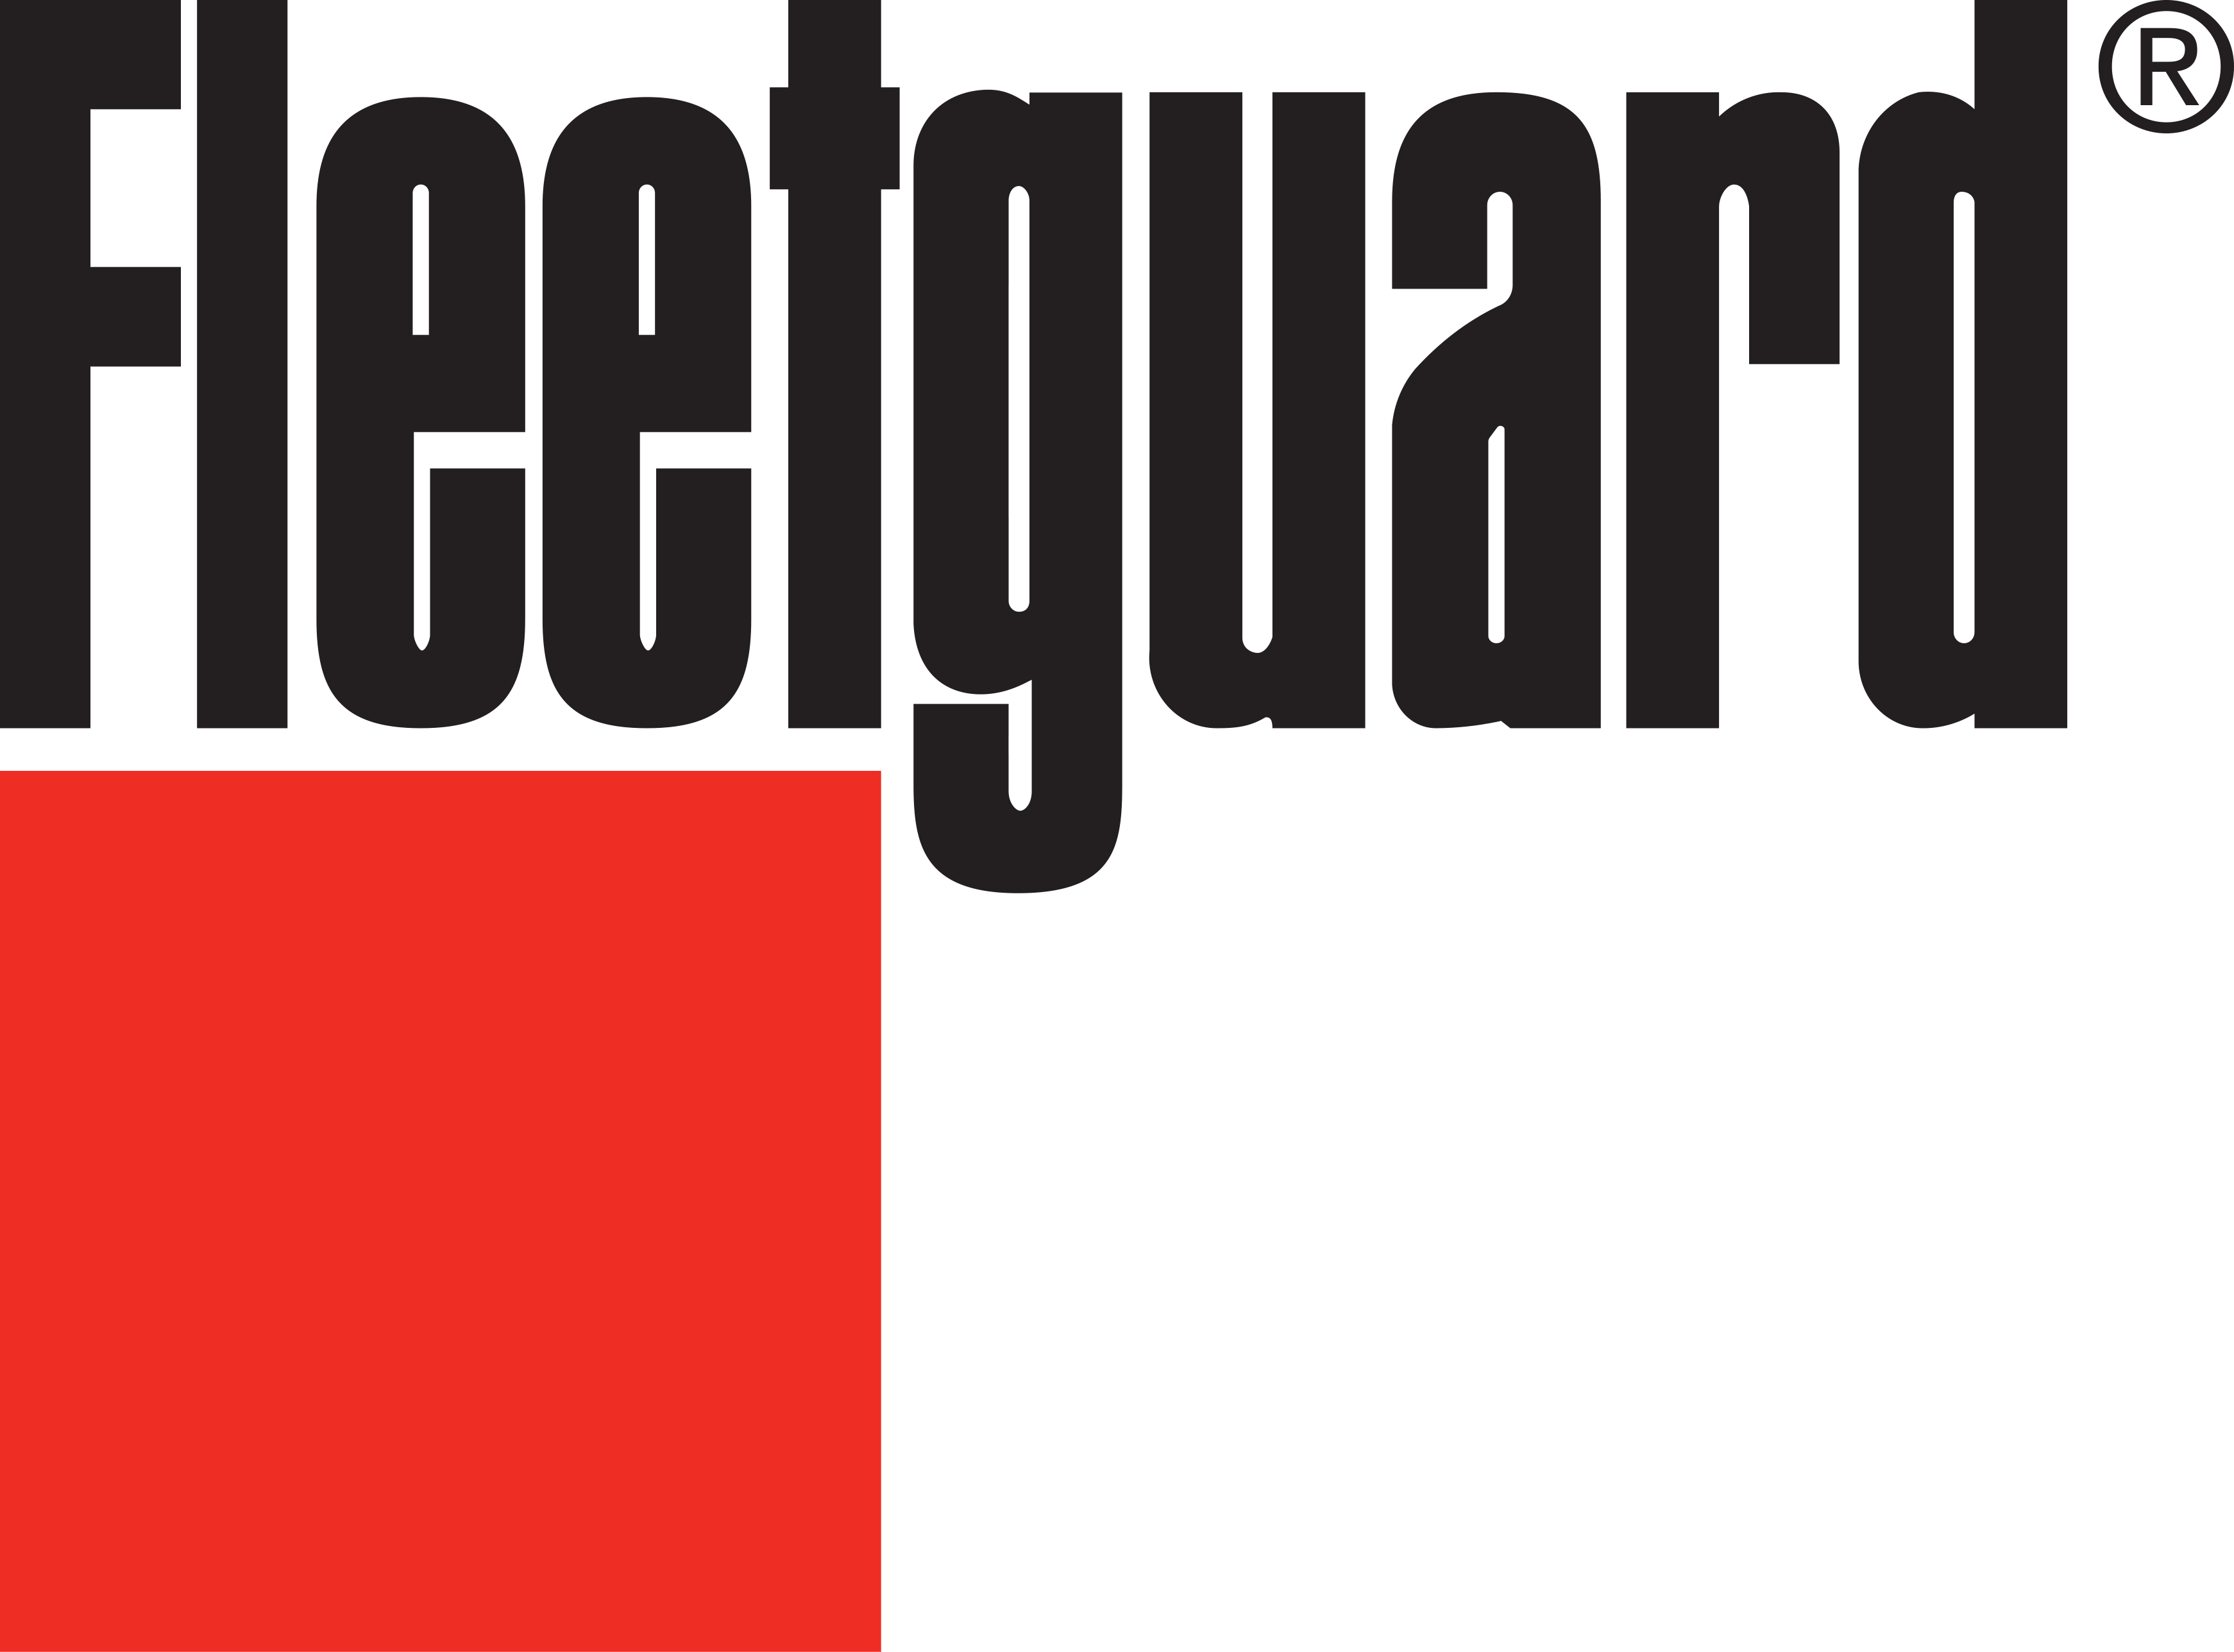 Can You Regain Muscle Mass After Age 50? fleetguard